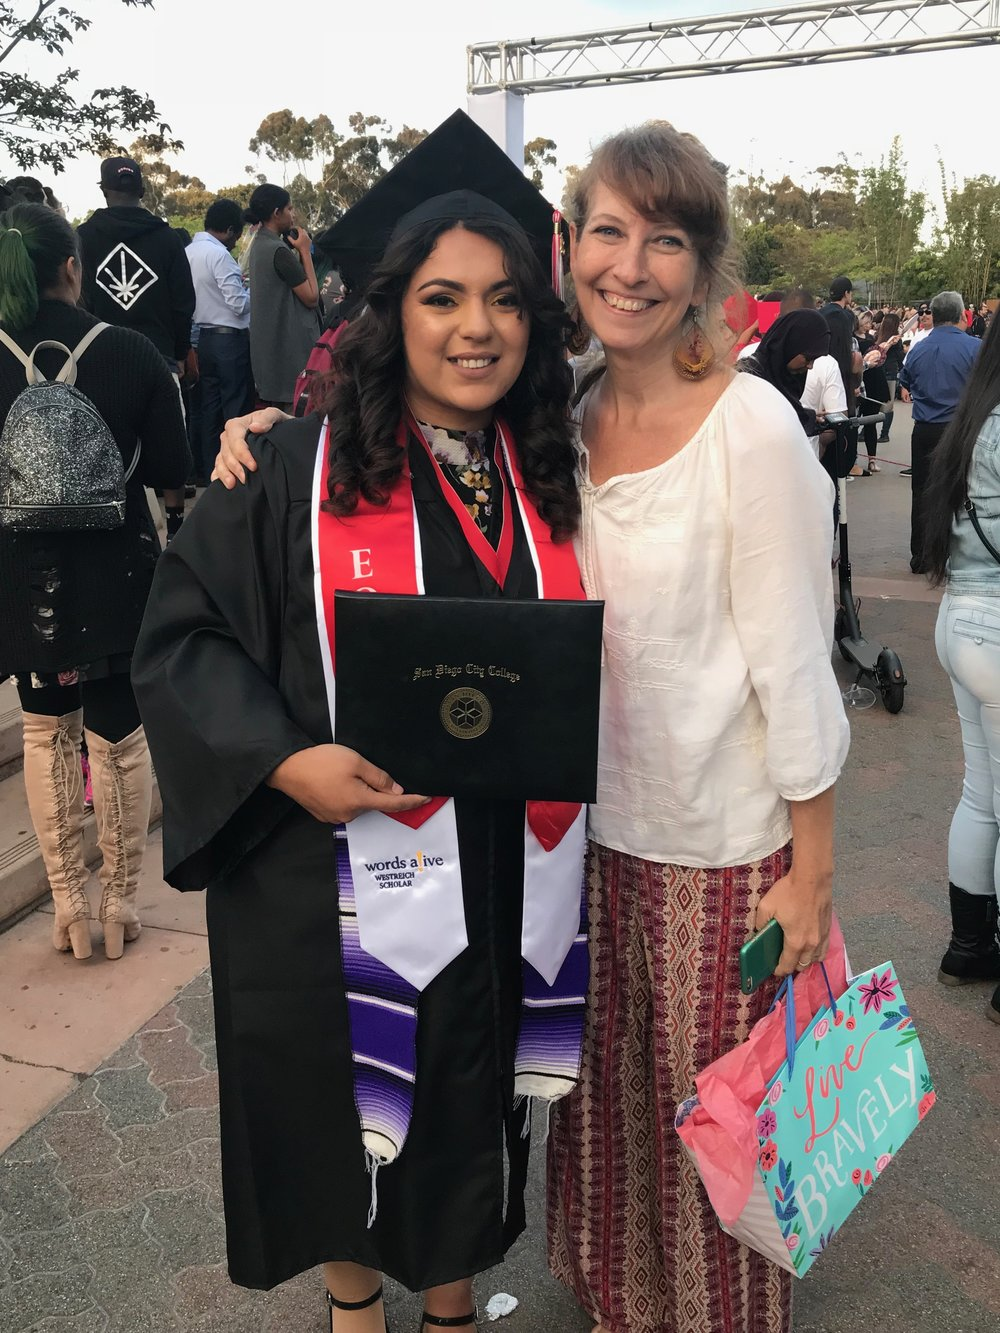 A picture of Zaphire with her mentor, Tammy Greenwood, at Zaphire's graduation from San Diego City College.